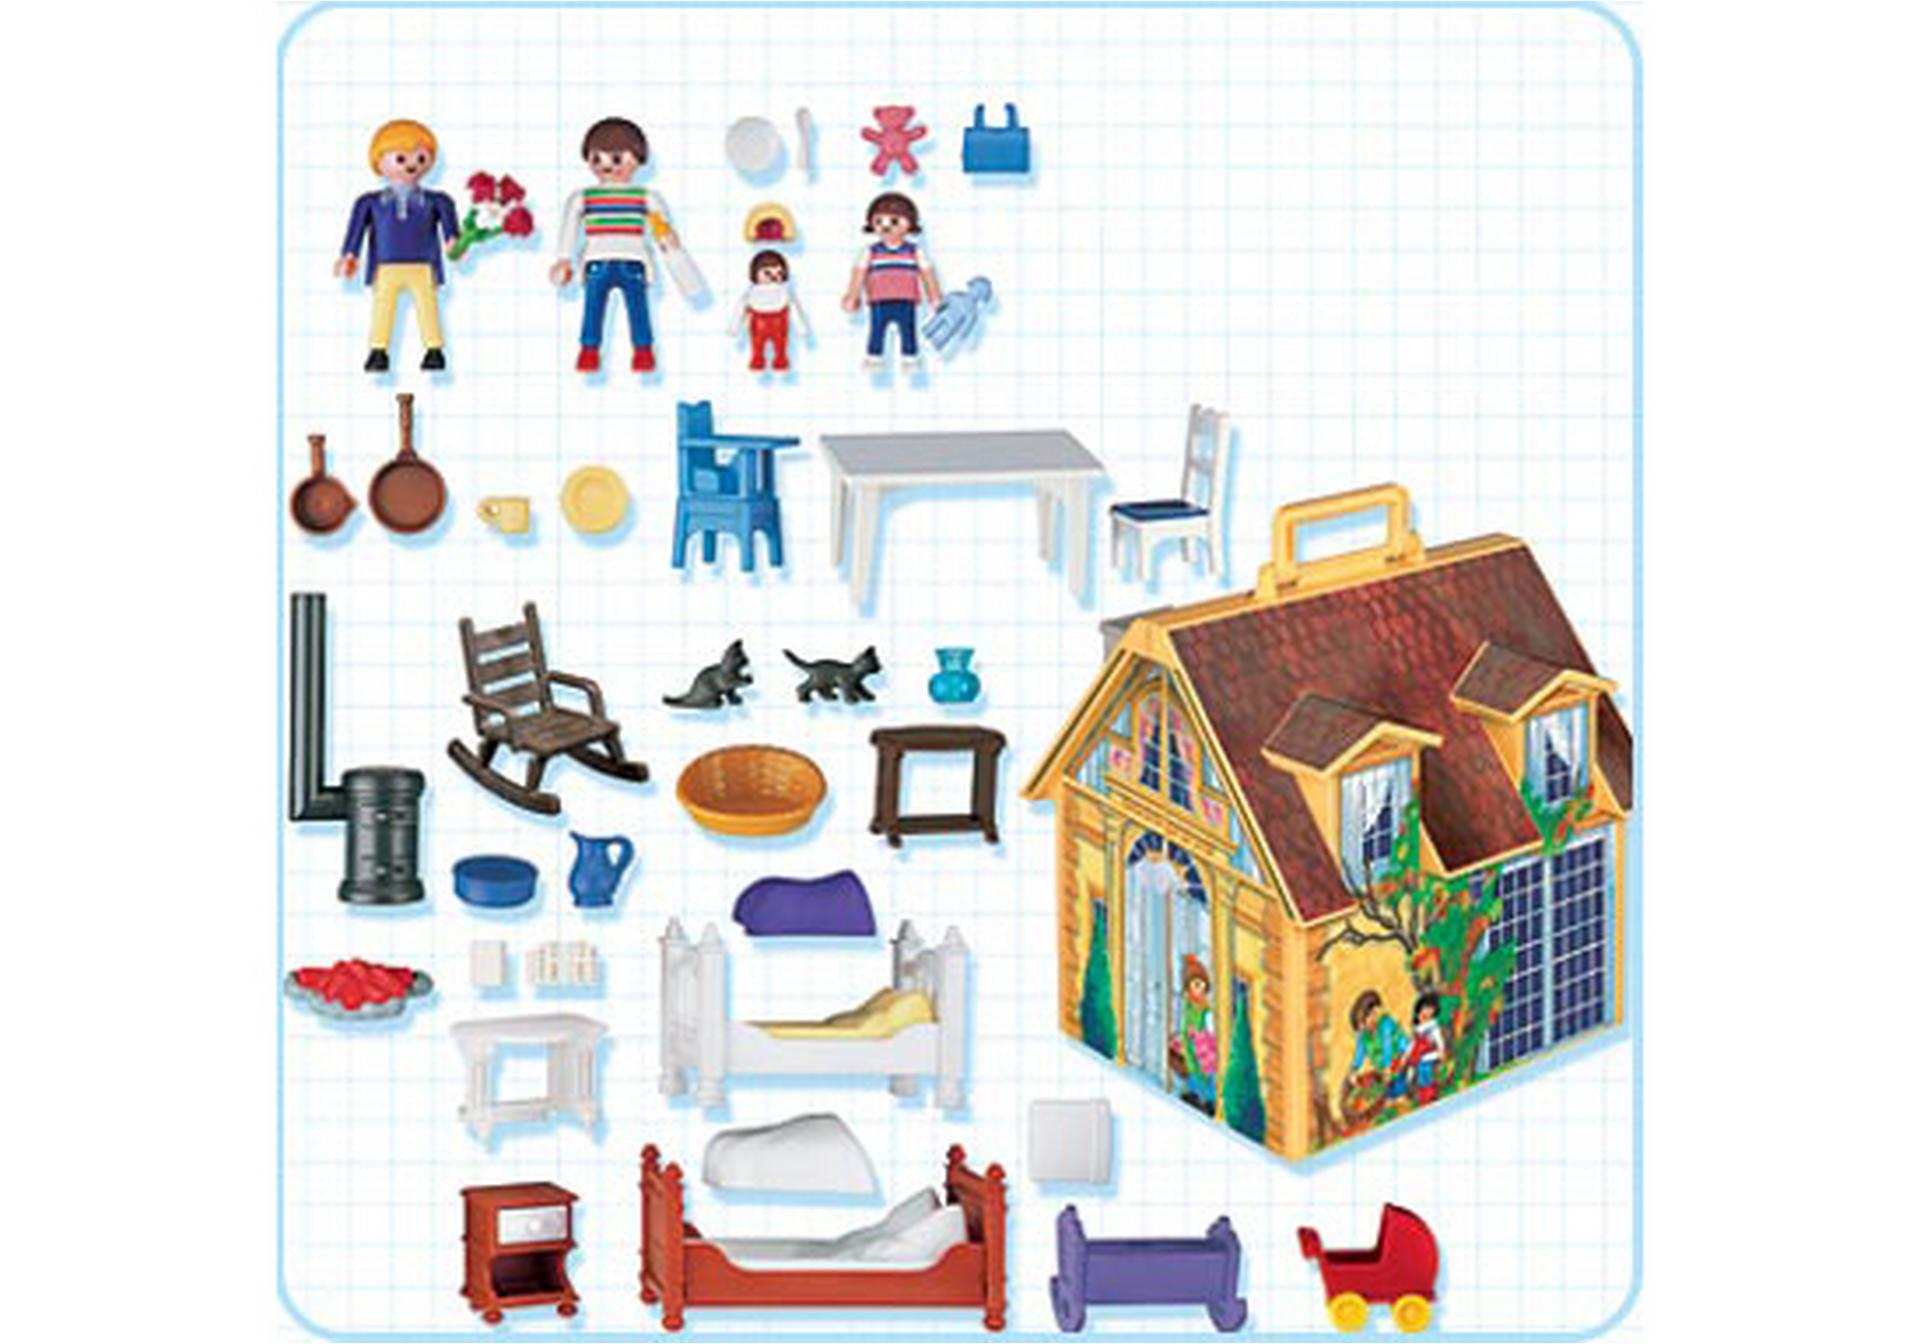 Maison de famille transportable 4145 a playmobil france for Plans de maison de famille